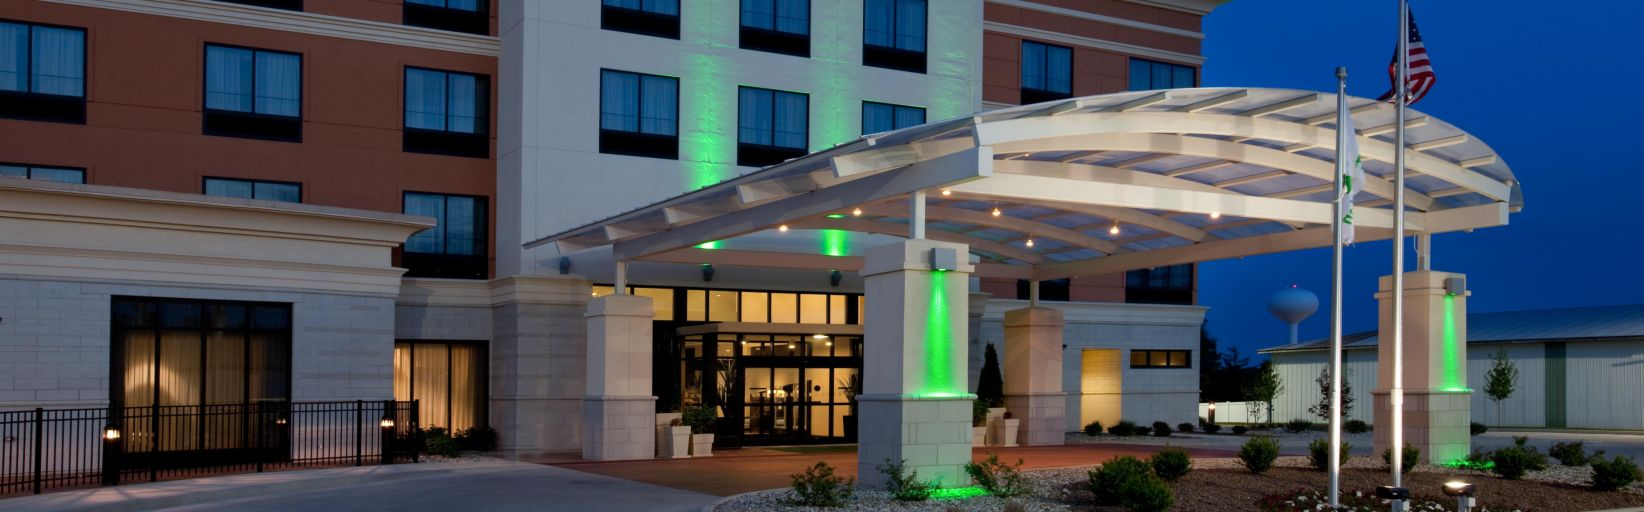 Fairview Heights Front Desk Hotel Exterior